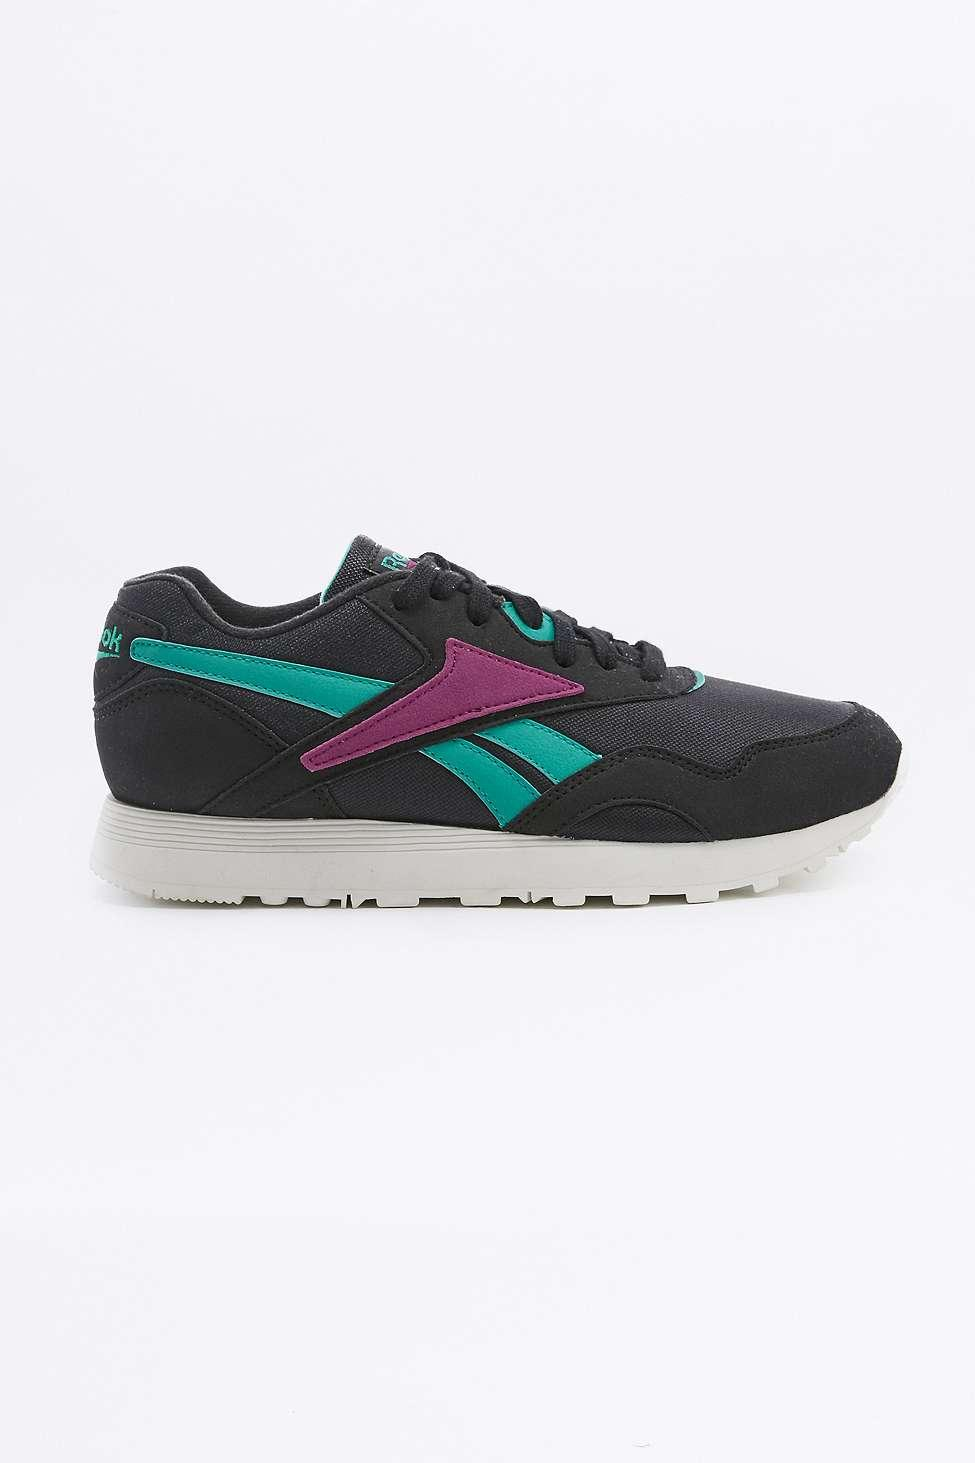 Reebok Synthetic Classic Green And Purple Black Nylon Trainers